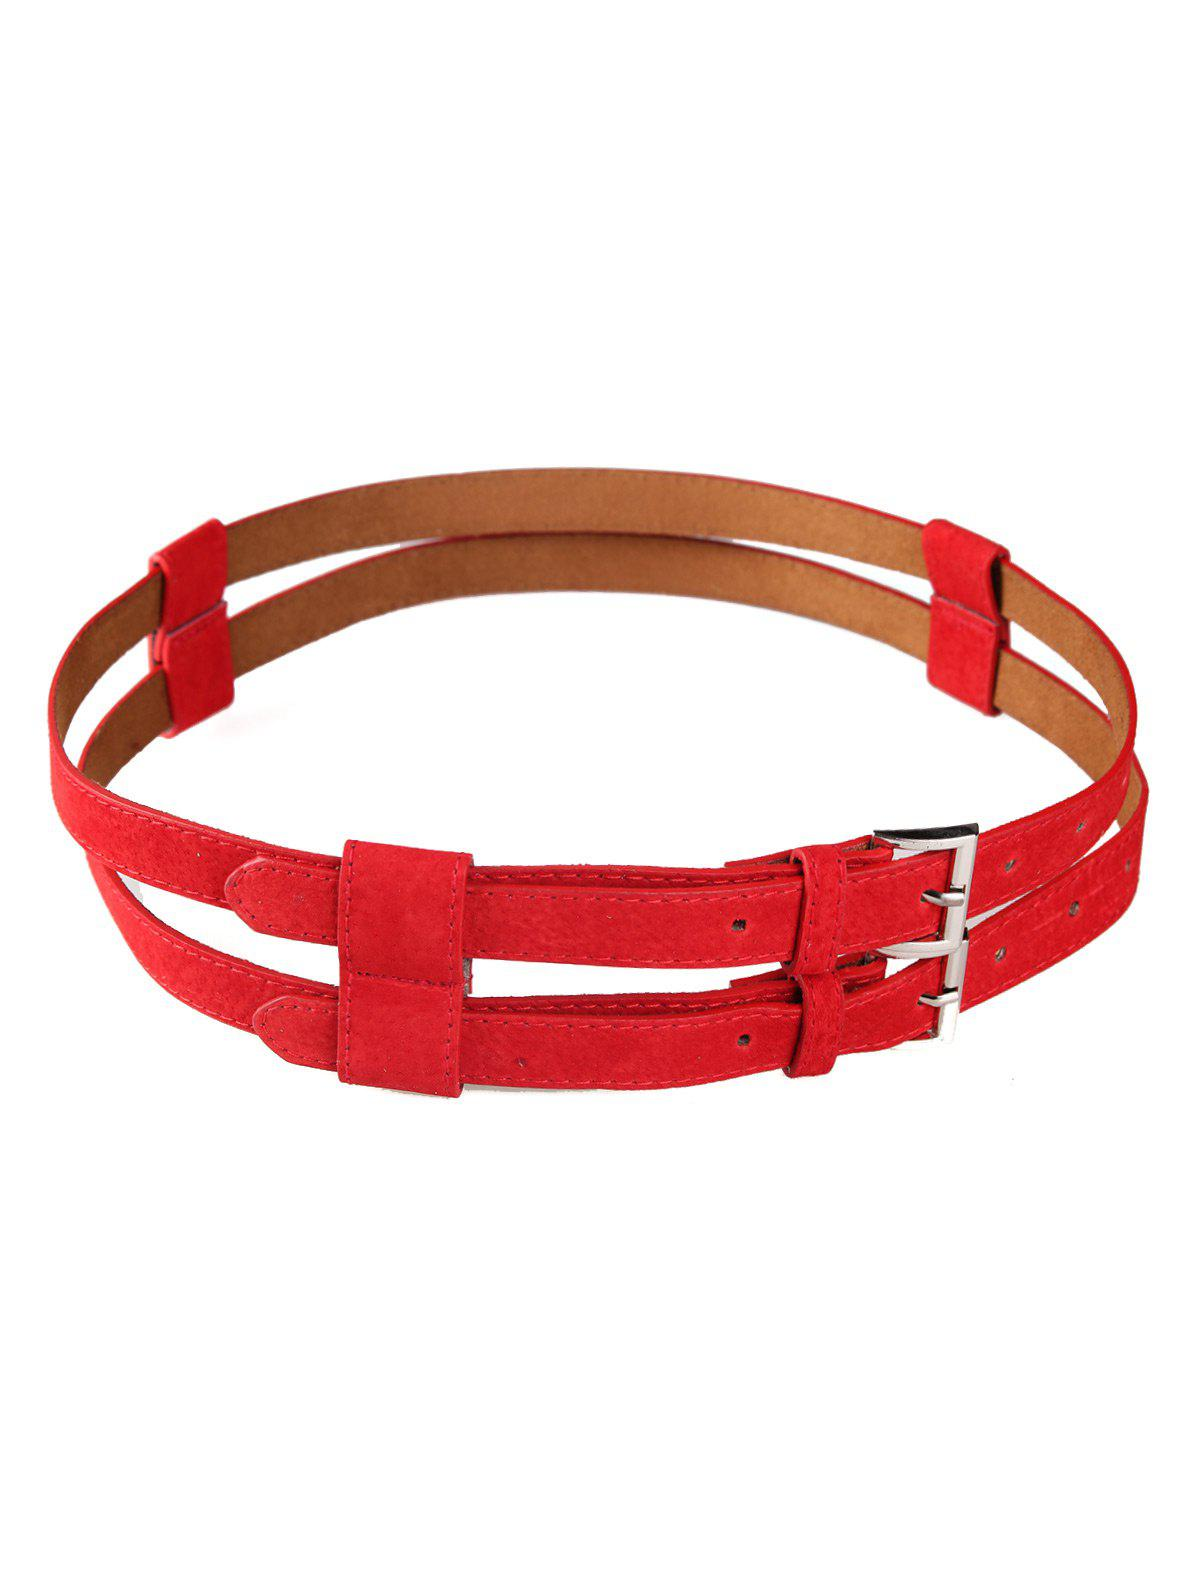 Retro Hollow Out Pattern Embellished Double Waist Belt - RED